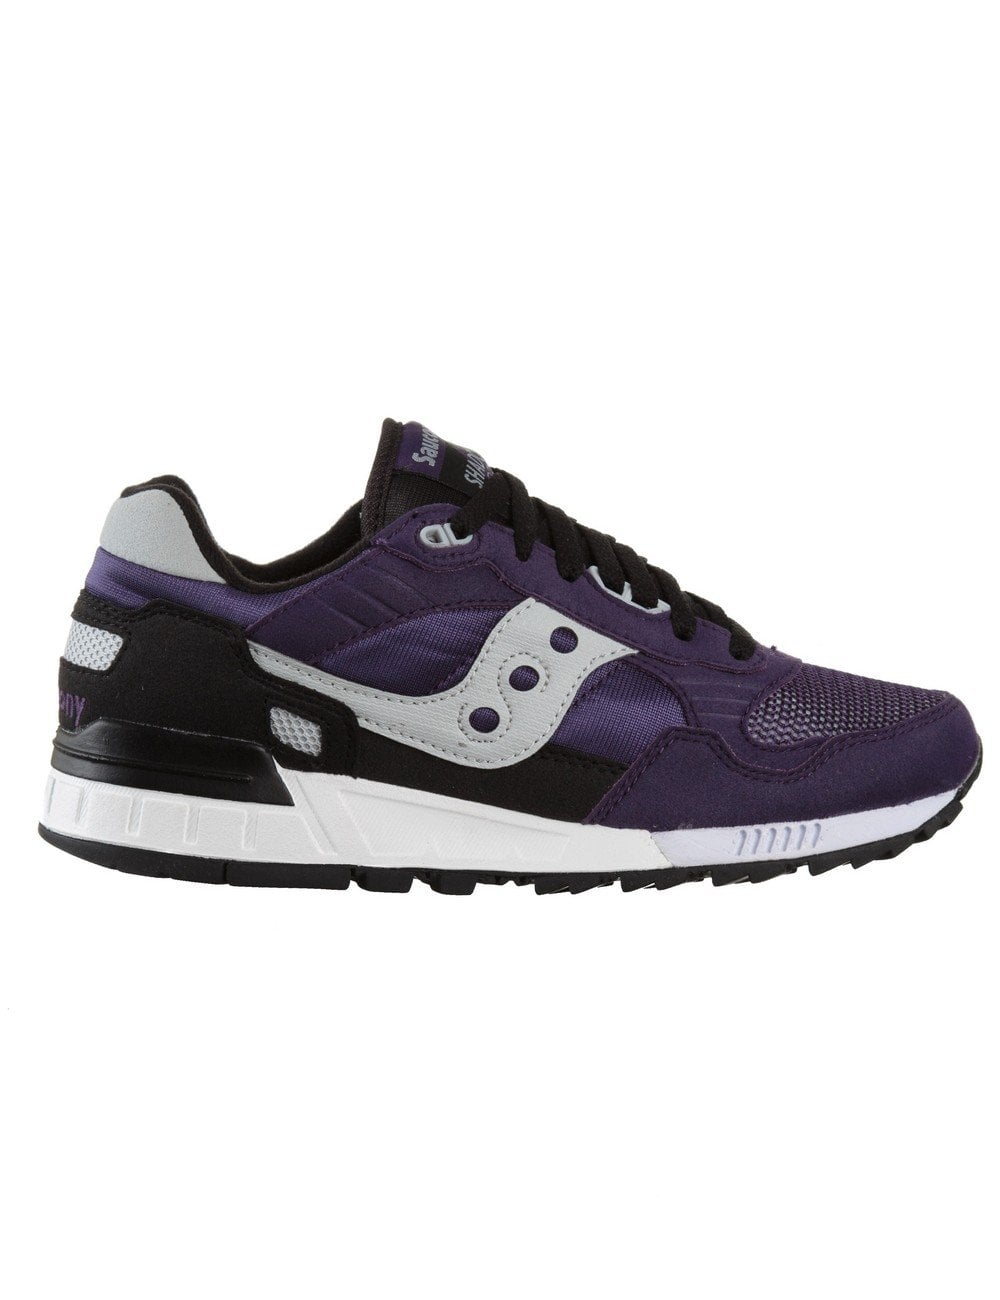 eb19d1c18e12 Saucony Shadow 5000 Shoes - Purple Black - Footwear from Fat Buddha ...